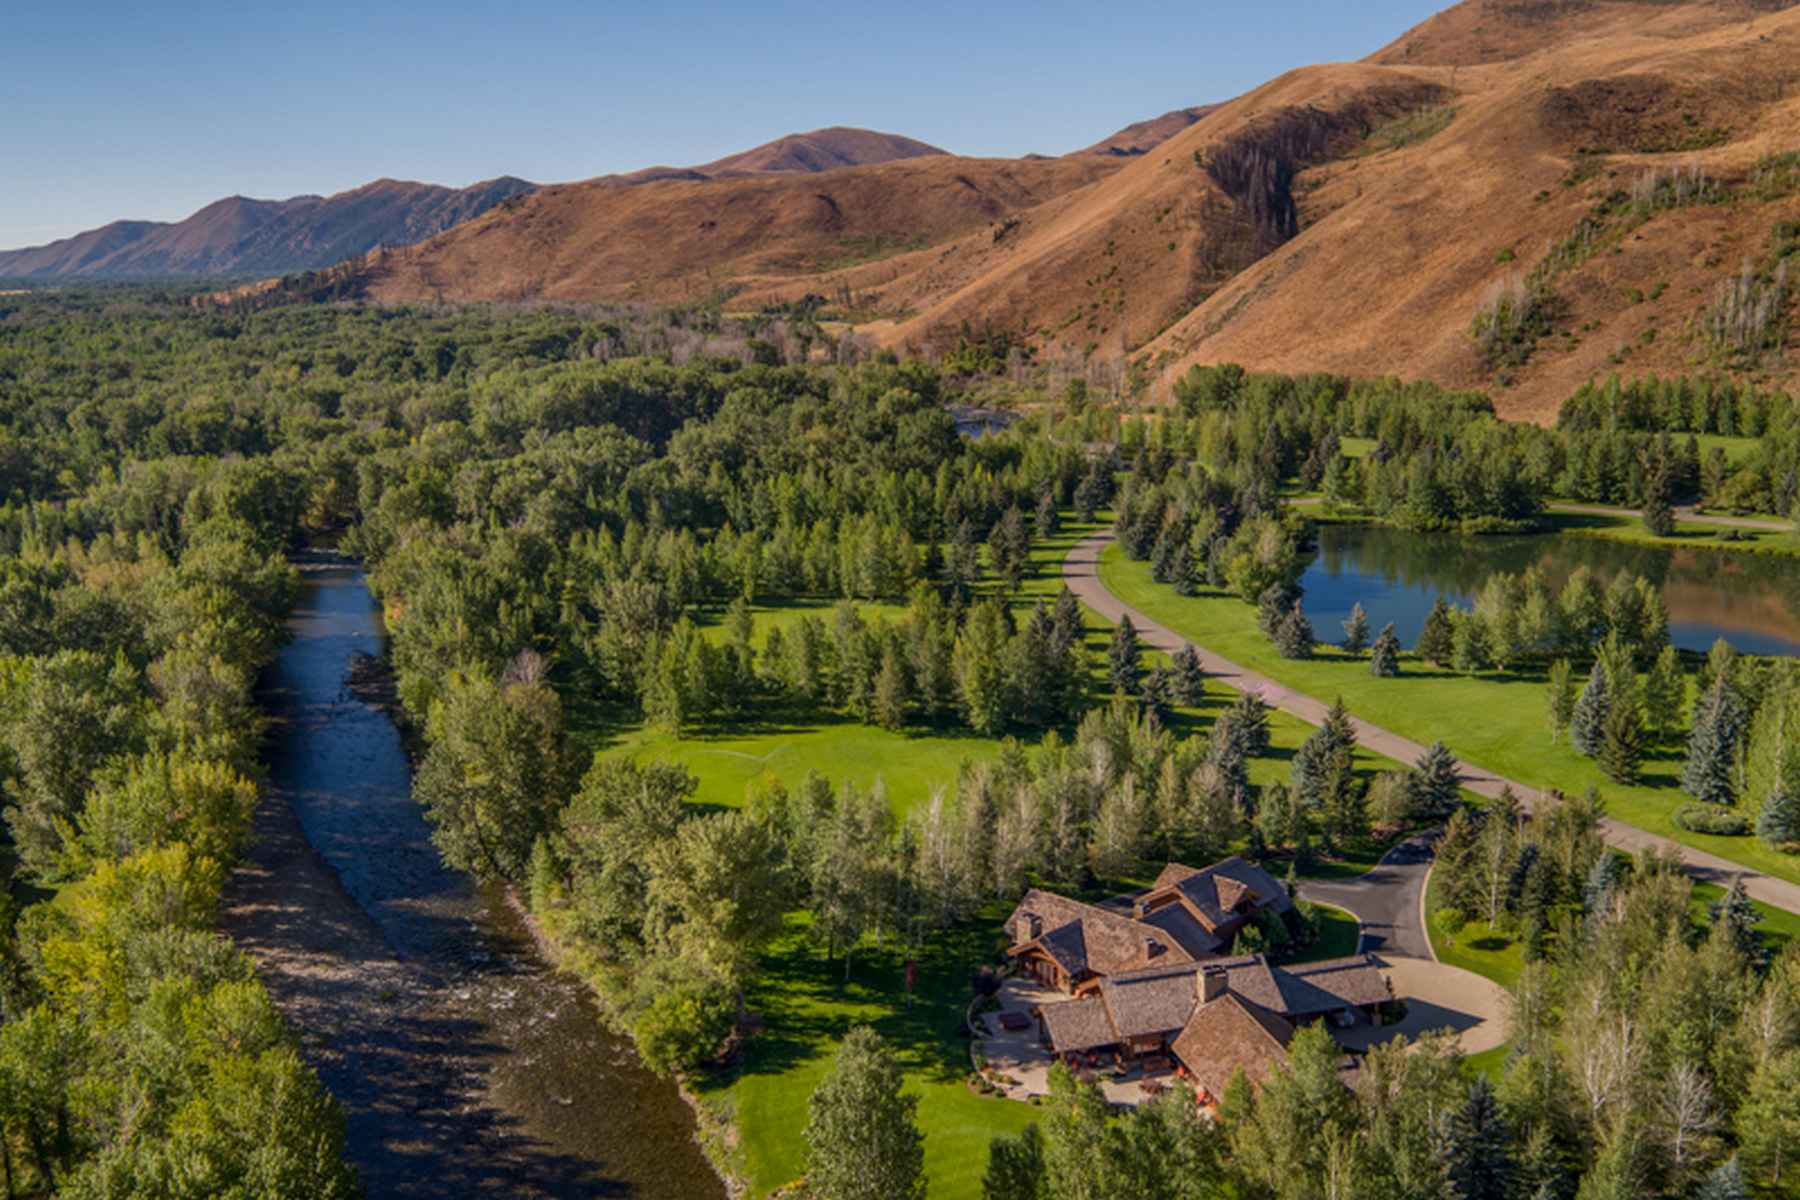 Casa Unifamiliar por un Venta en On The River In Golden Eagle 180 S Golden Eagle Dr Mid Valley, Ketchum, Idaho, 83340 Estados Unidos